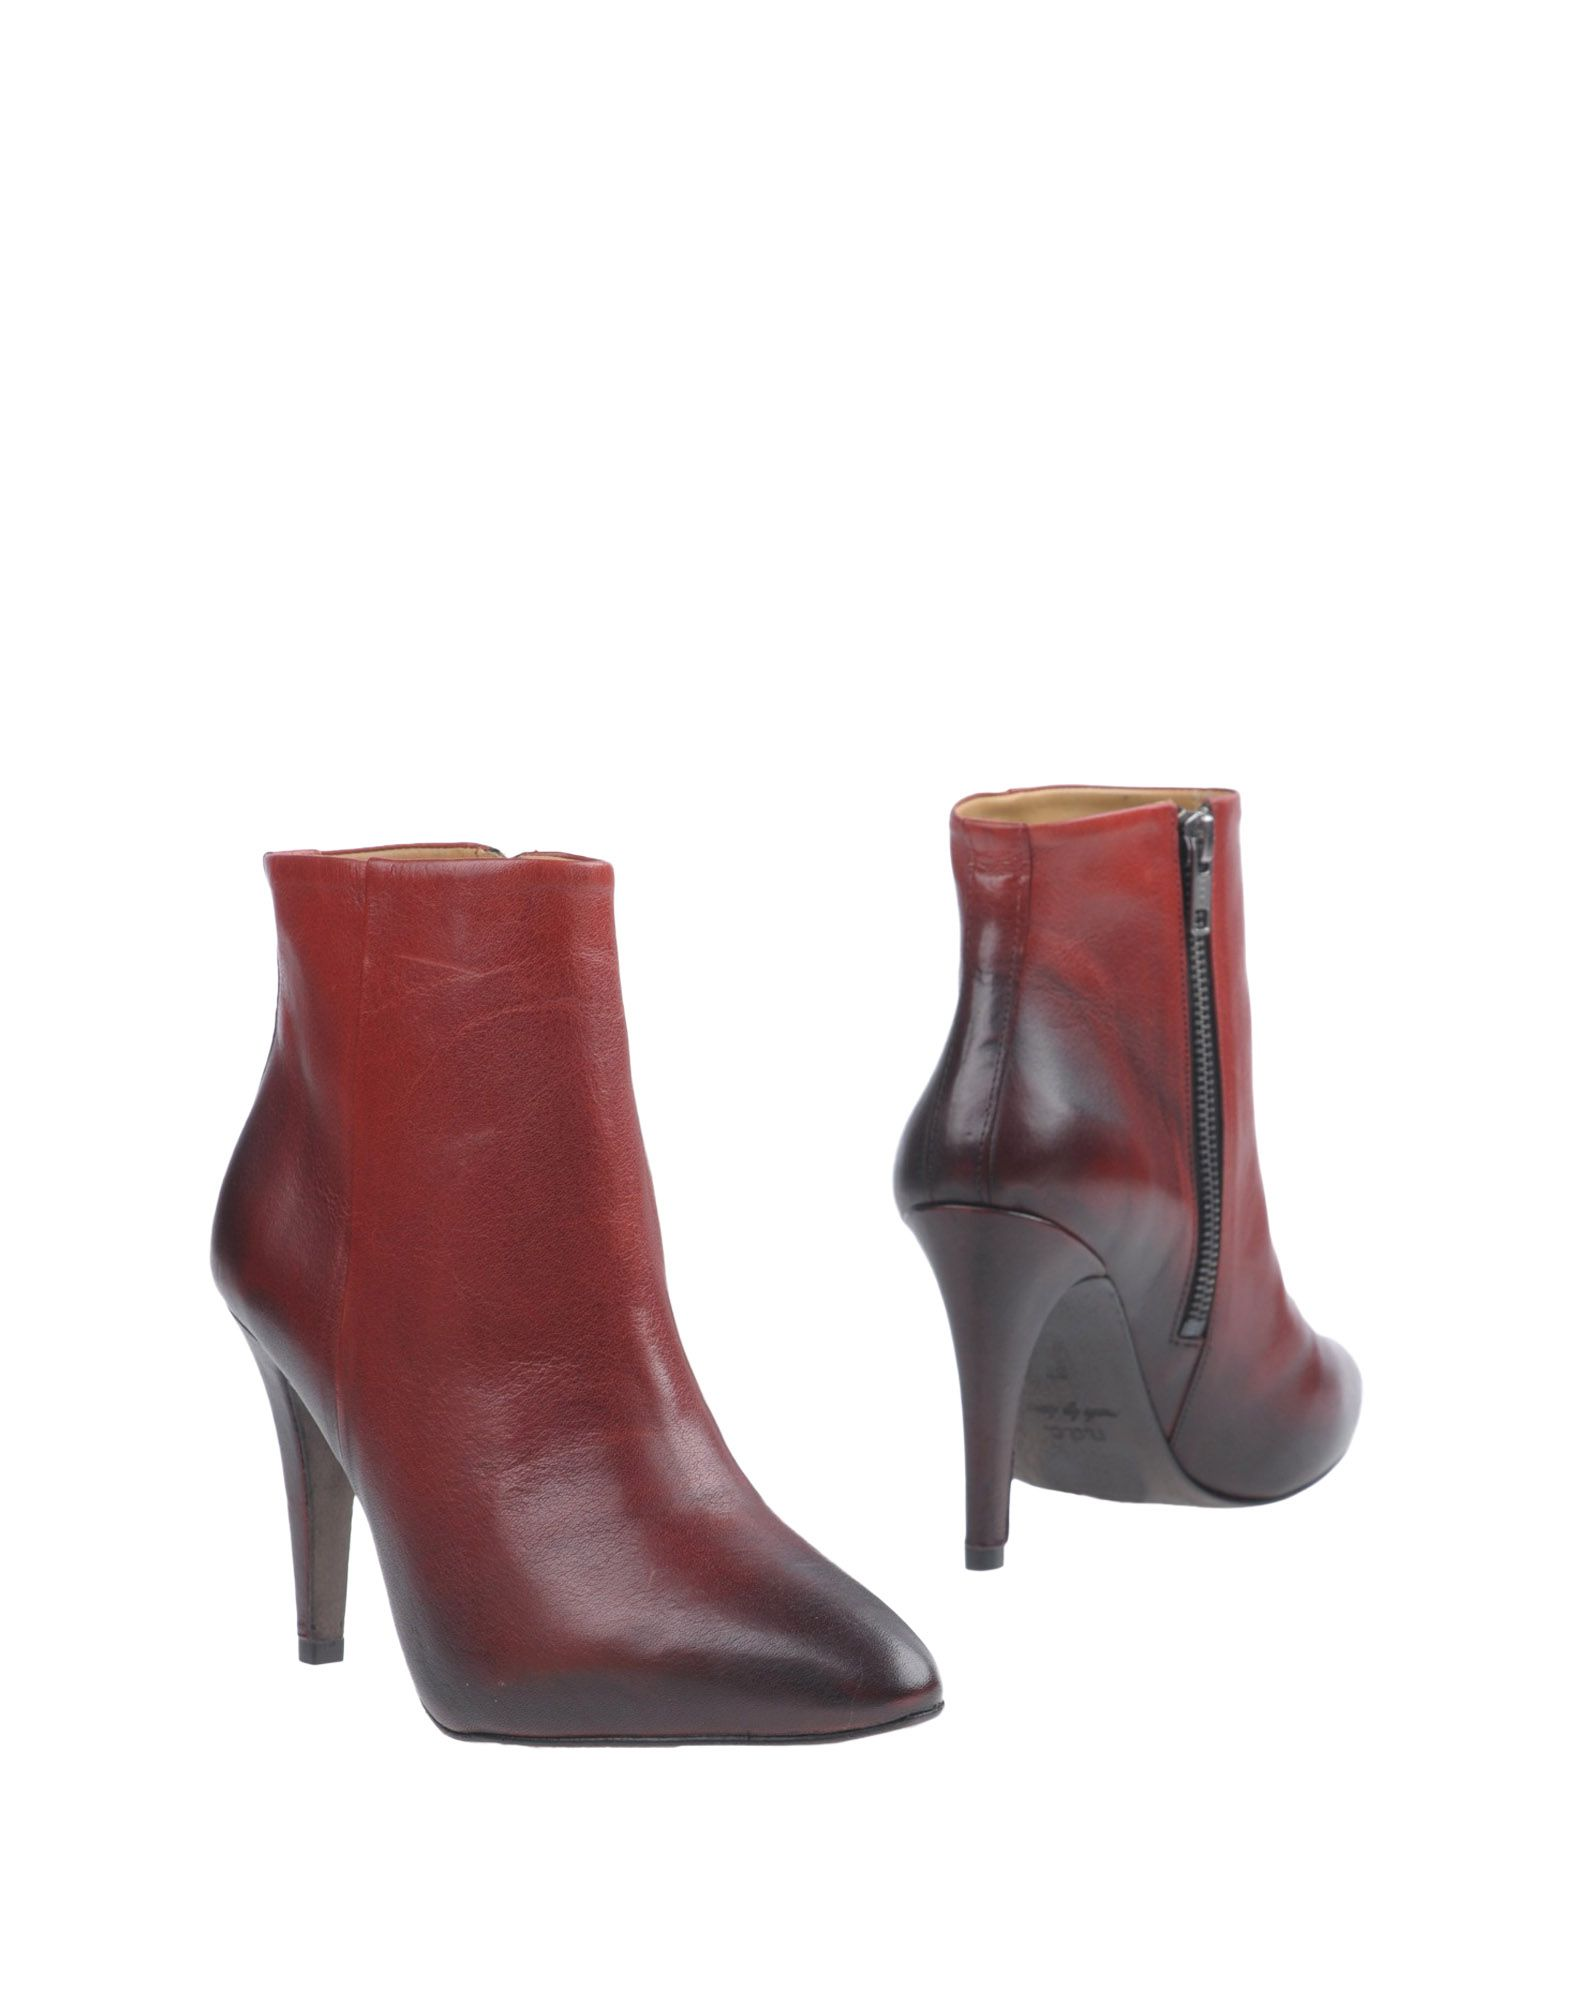 Bottine N.D.C. Made By Hand Femme - Bottines N.D.C. Made By Hand sur